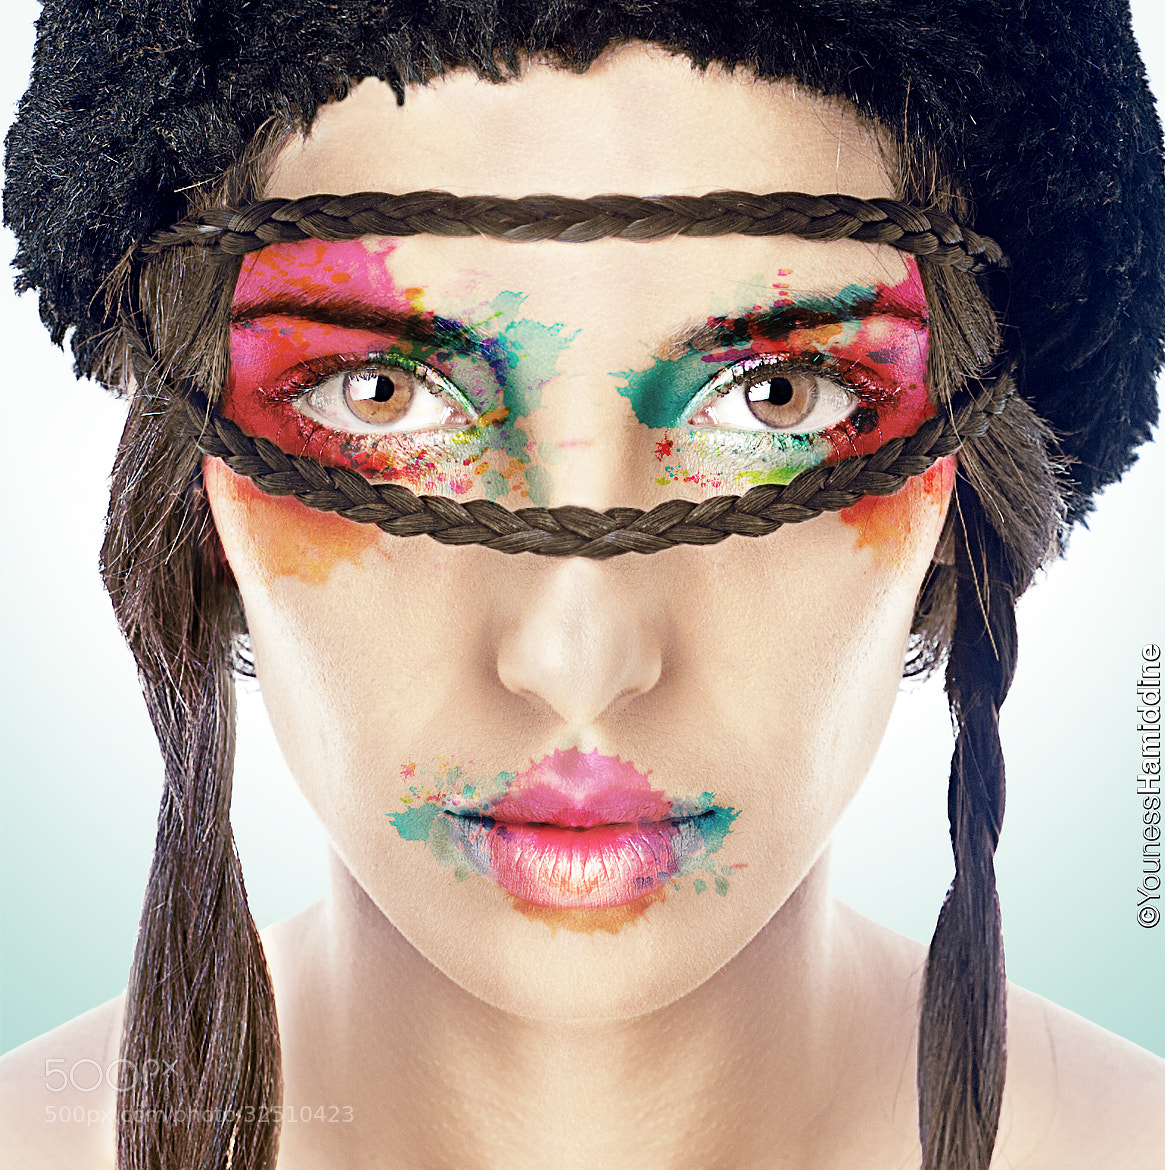 Photograph Digital makeup artist by Youness Hamiddine on 500px